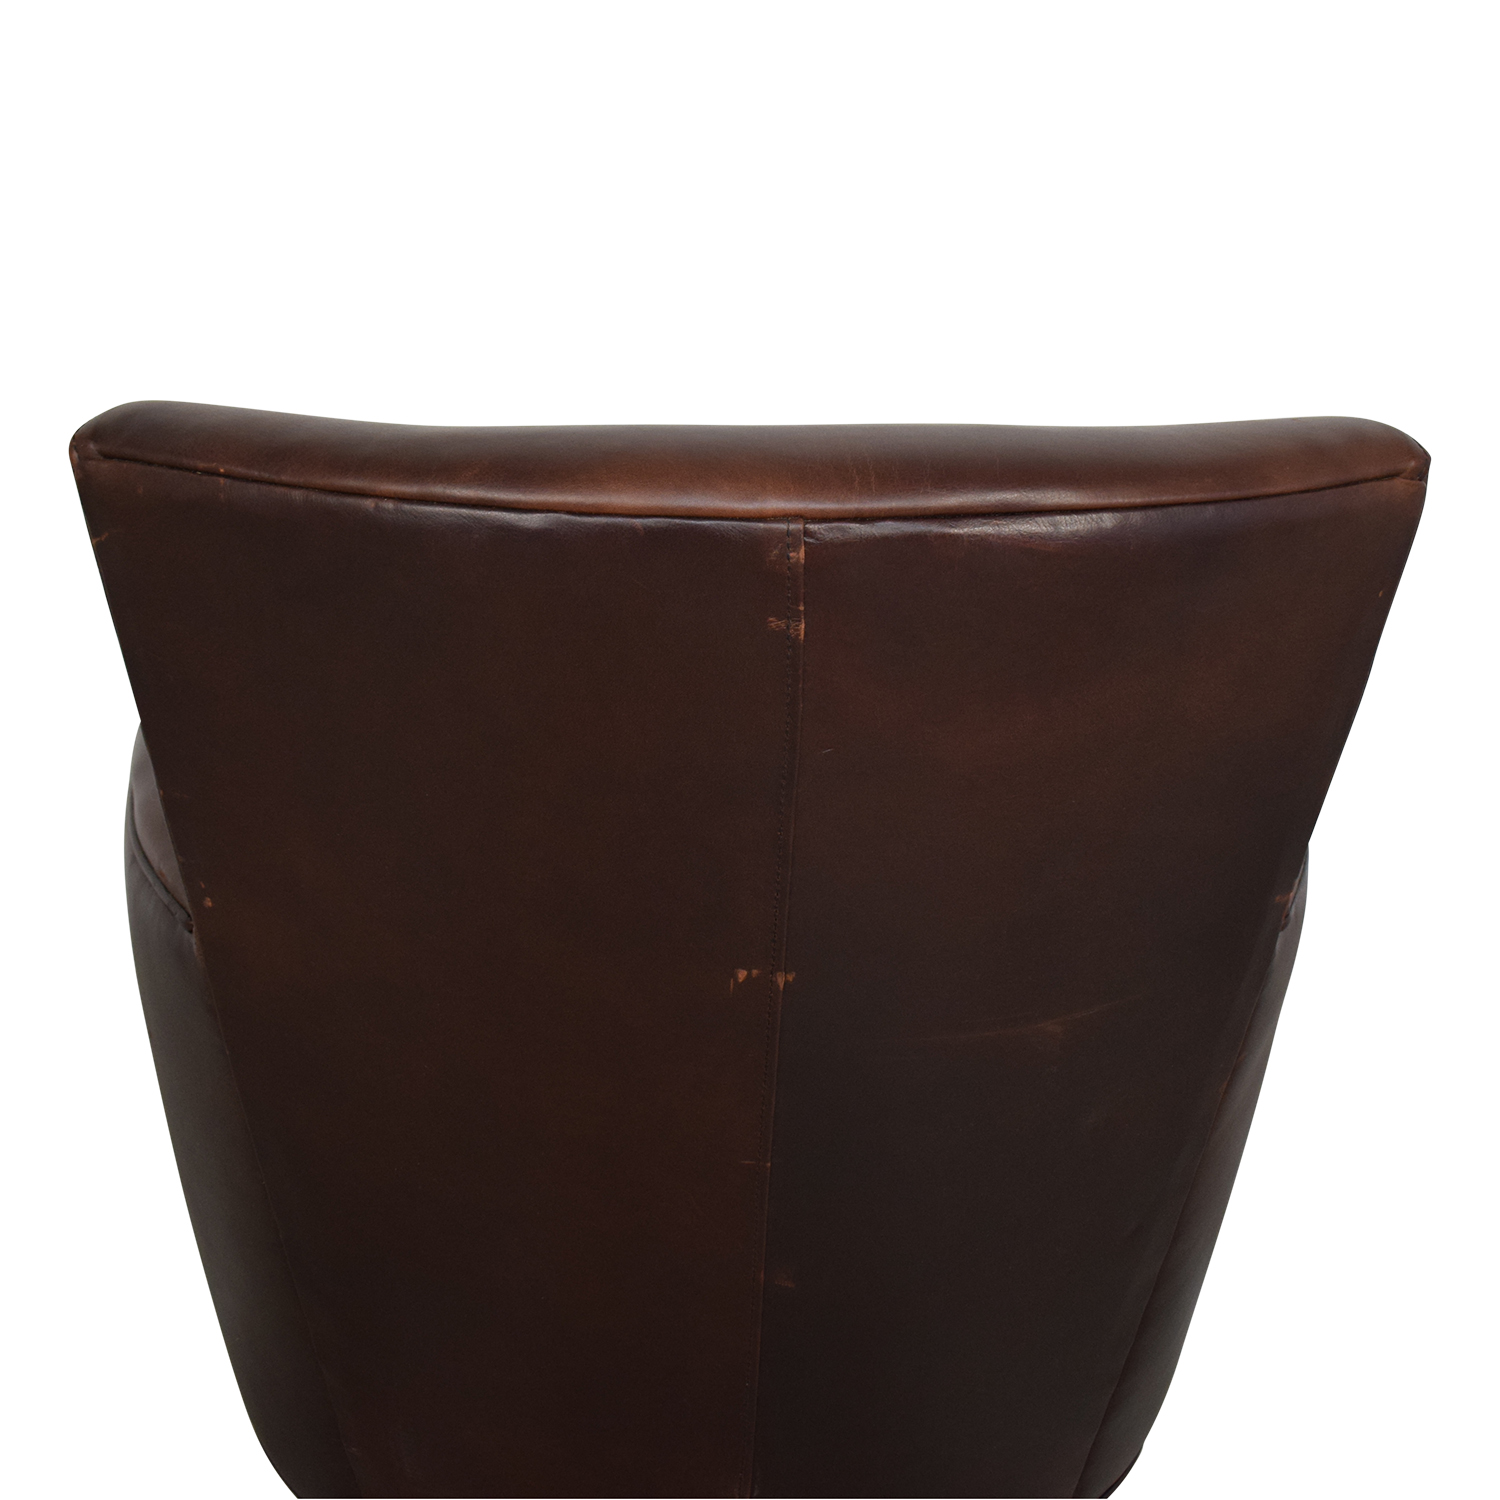 Crate & Barrel Briarwood Leather Chair Crate & Barrel